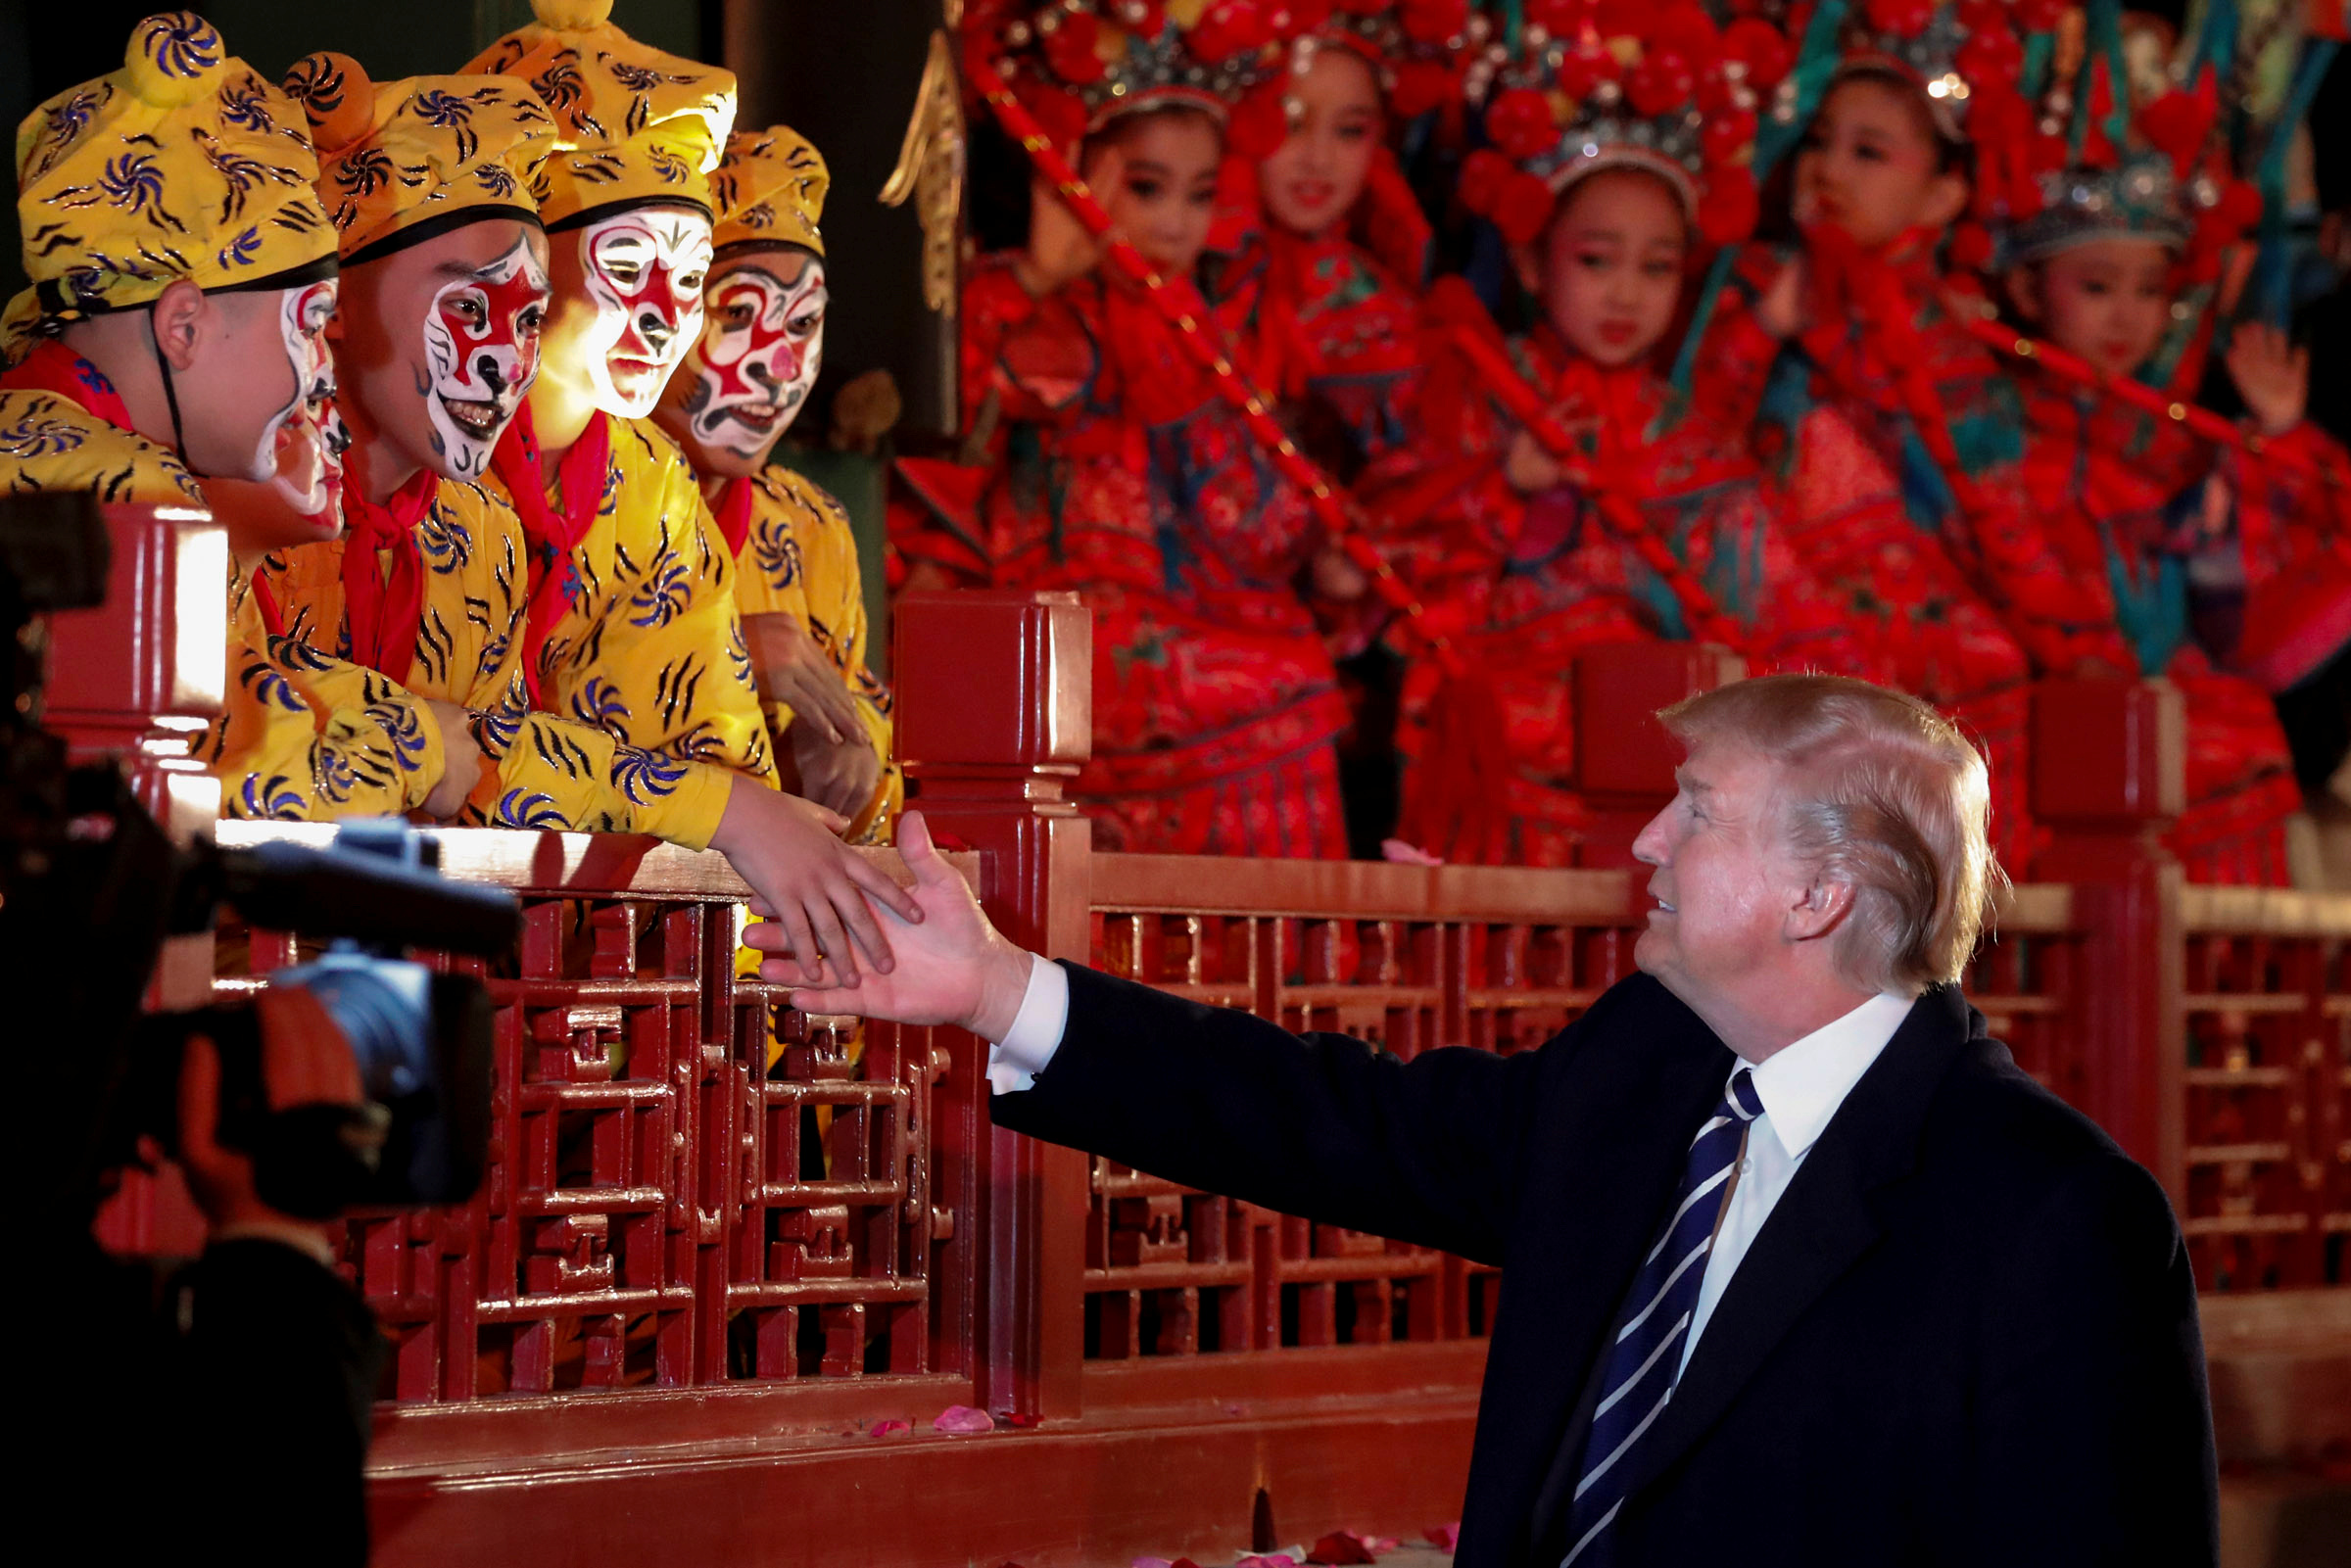 U.S. President Donald Trump shakes hands with opera performers at the Forbidden City in Beijing, China, on Nov. 8, 2017.